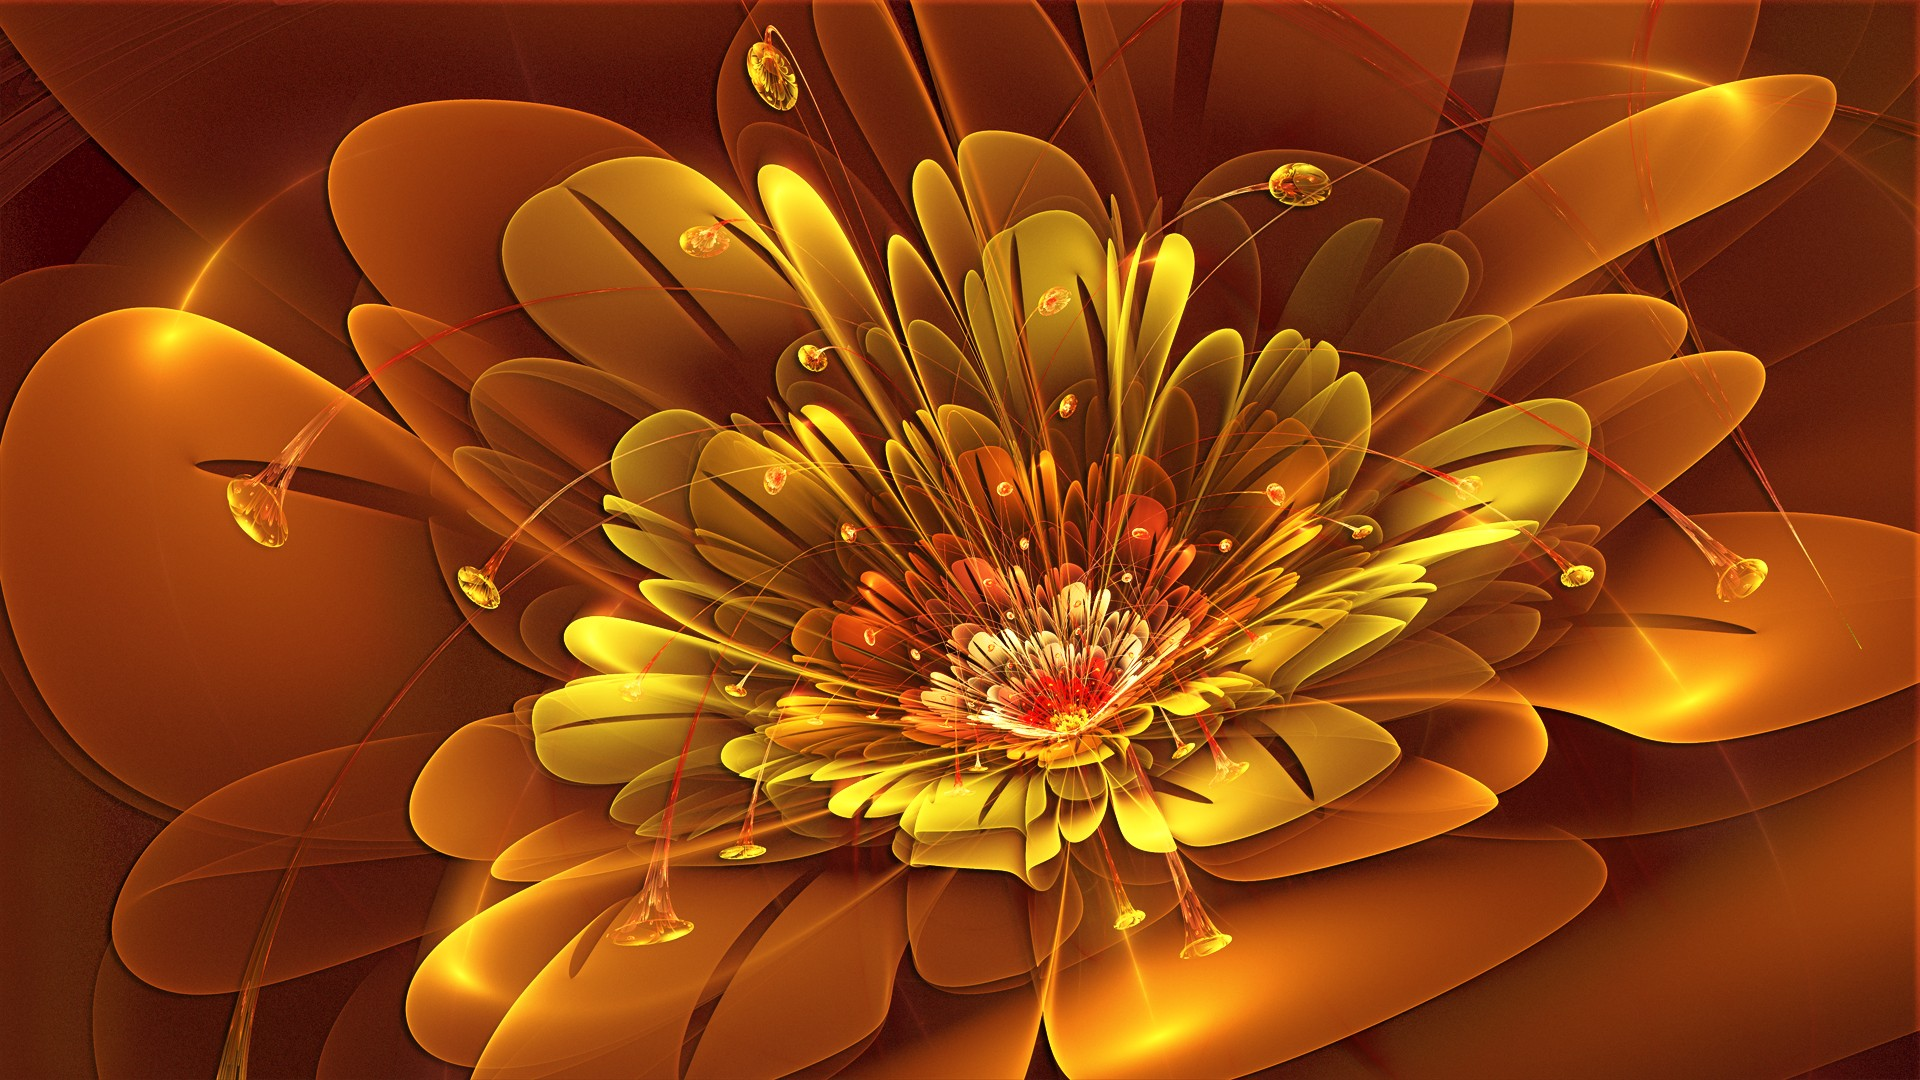 Abstract Flowers Wallpaper 1920x1080 Abstract Flowers Orange 1920x1080